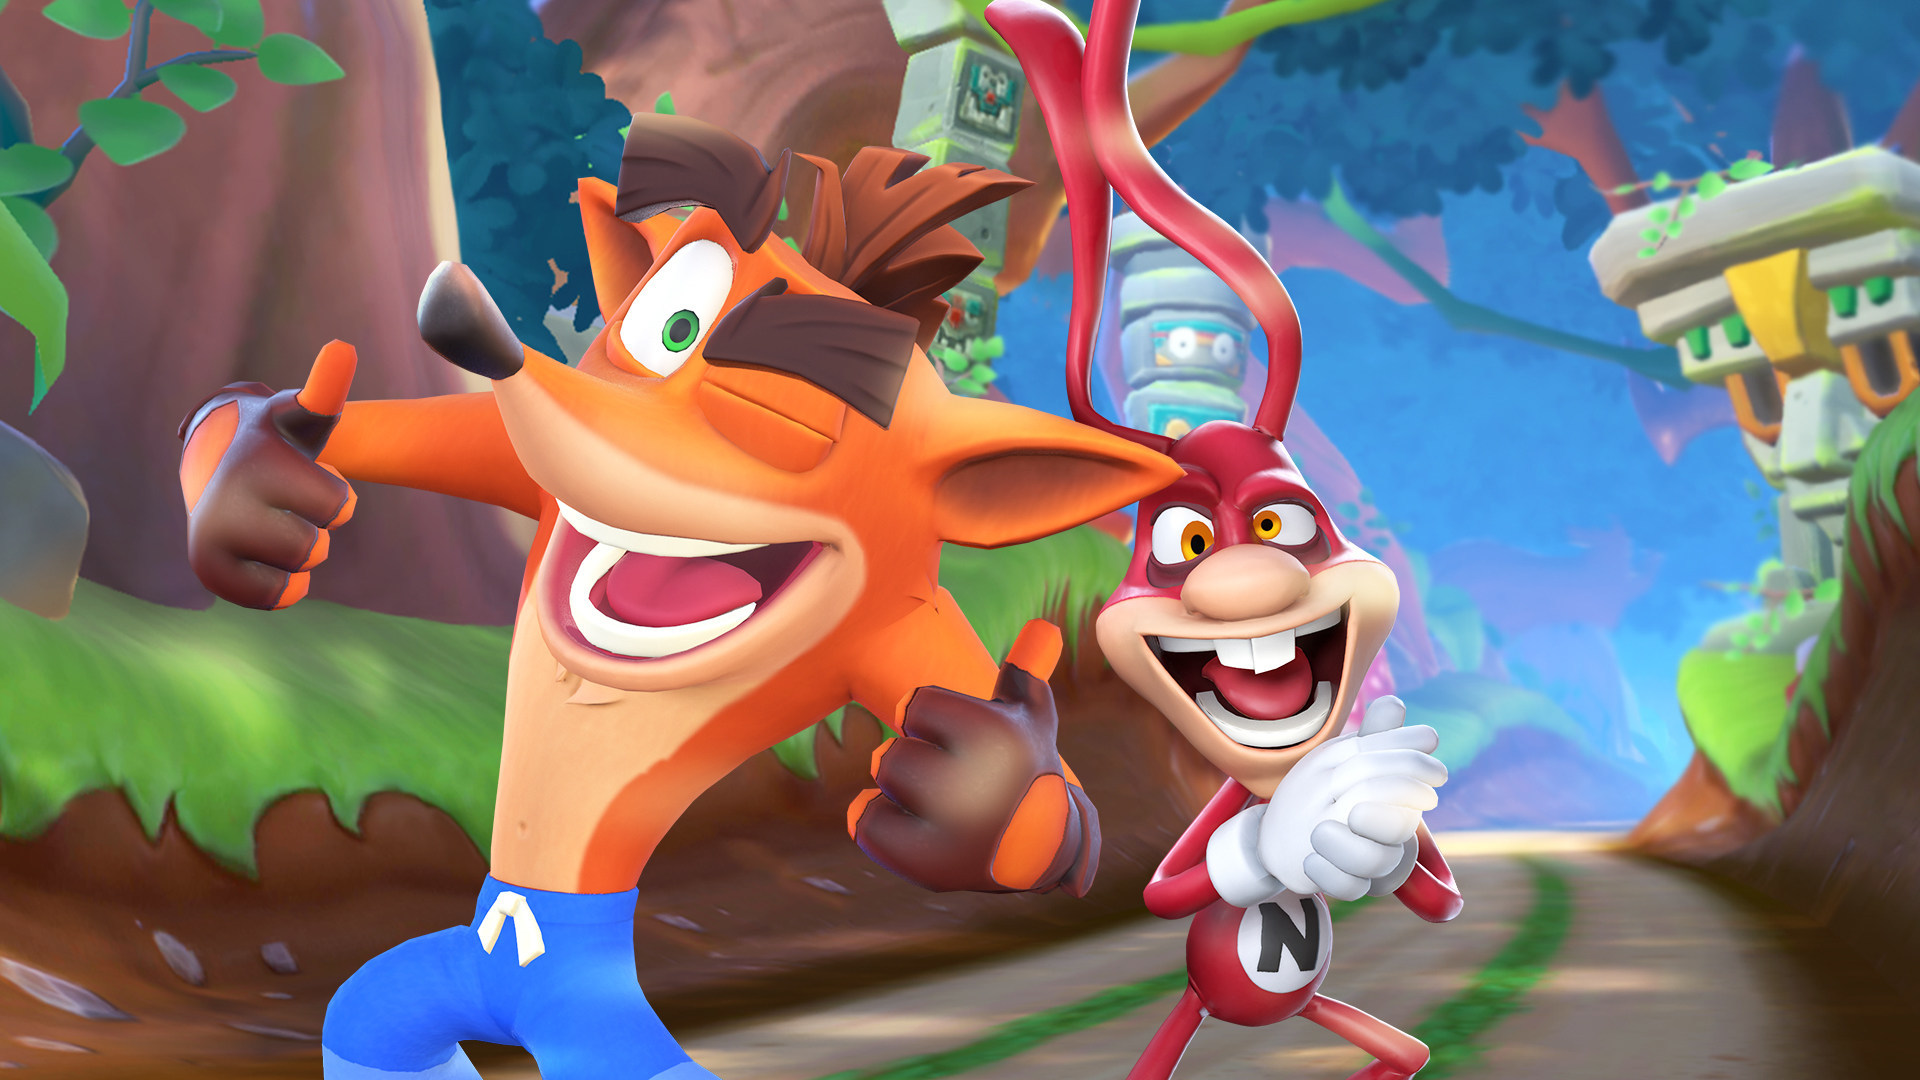 Crash Bandicoot and the Noid